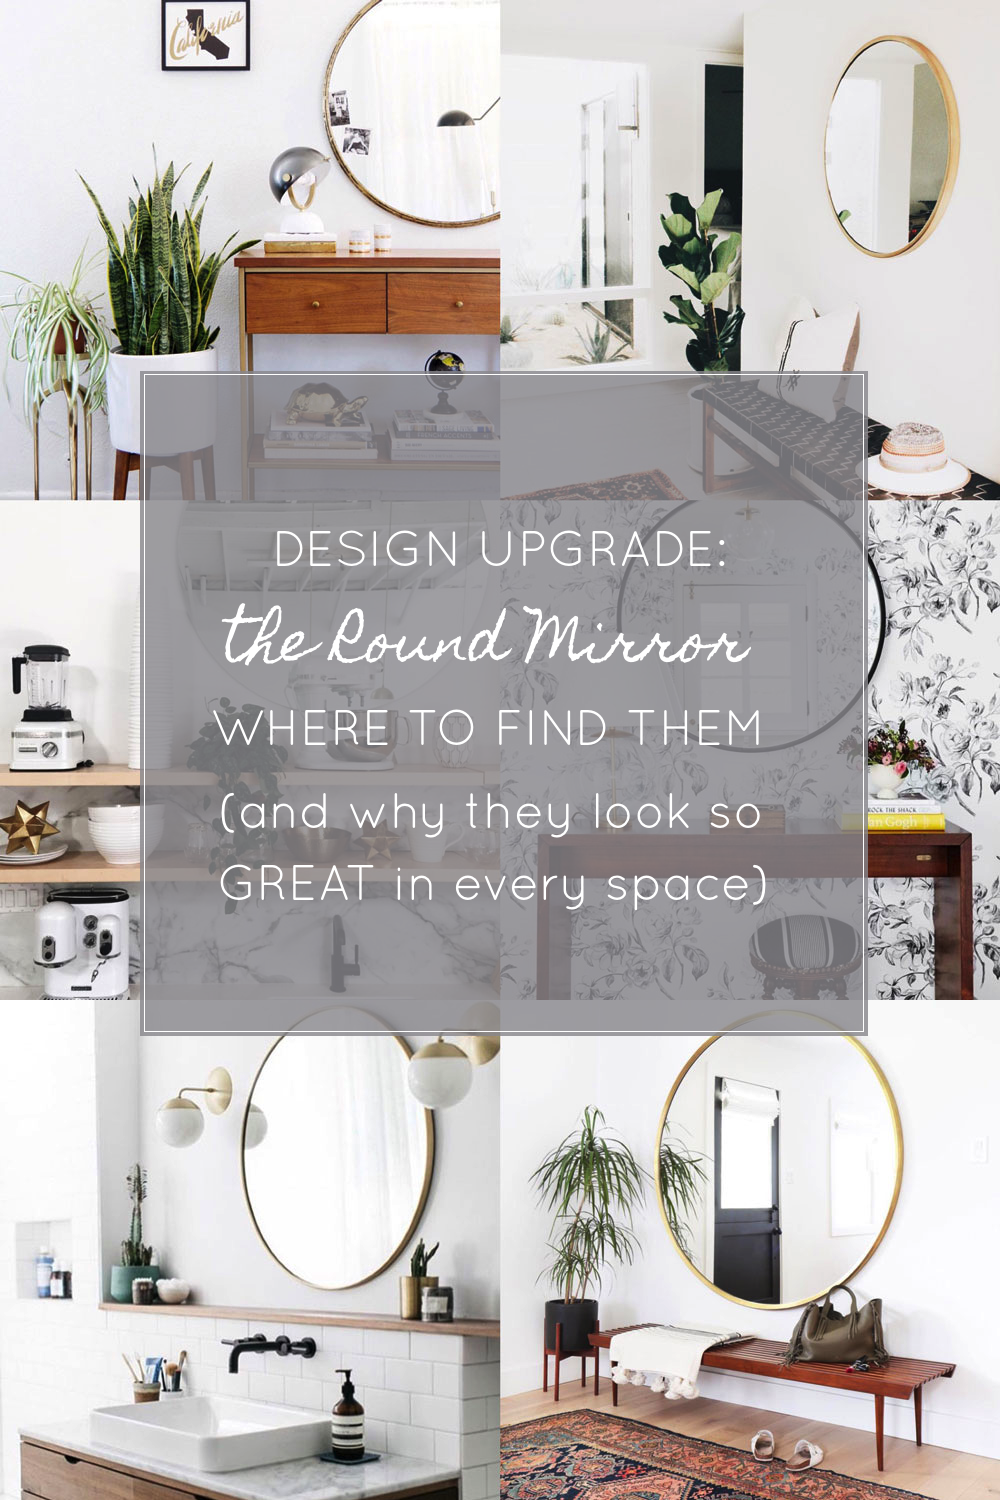 A Simple Modern Design Upgrade: the Round Mirror (Where to find them at every price + why they look so great in every space!) Click through for the details. | glitterinc.com | @glitterinc